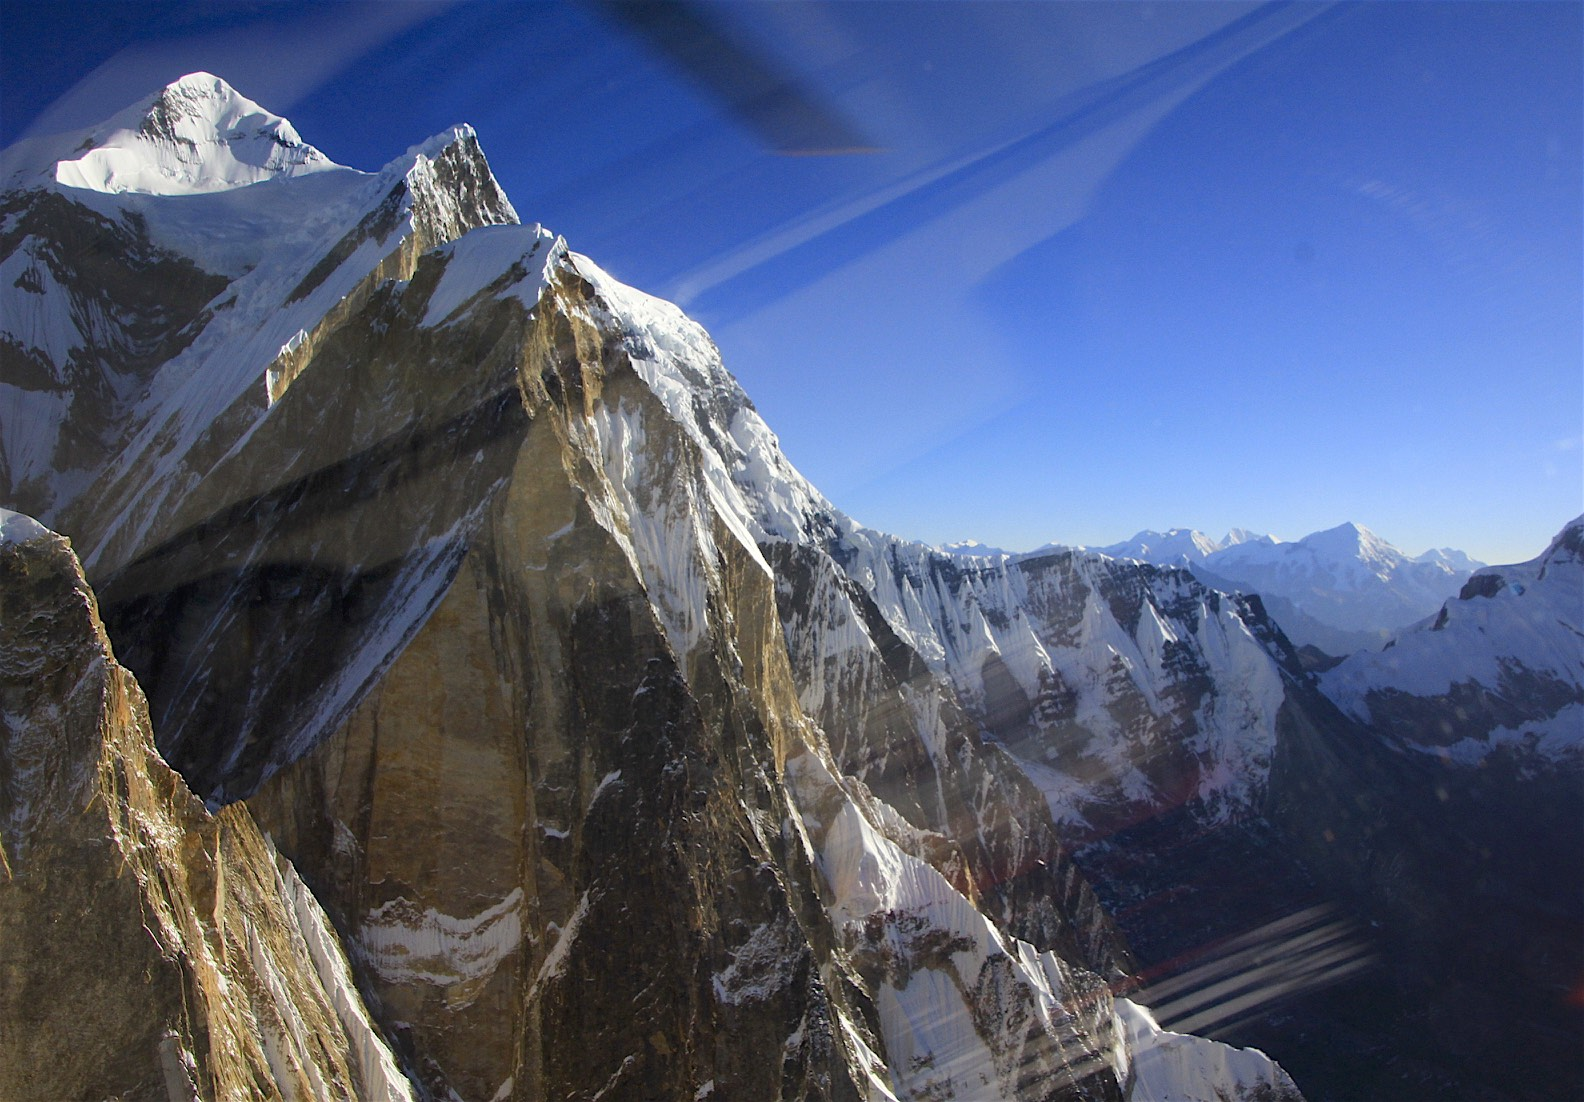 Annapurna III - the mountains on the horizon are on the border of Nepal and Tibet (China). Apparently the ridge visible in the photo on Annapurna III has not been climbed.